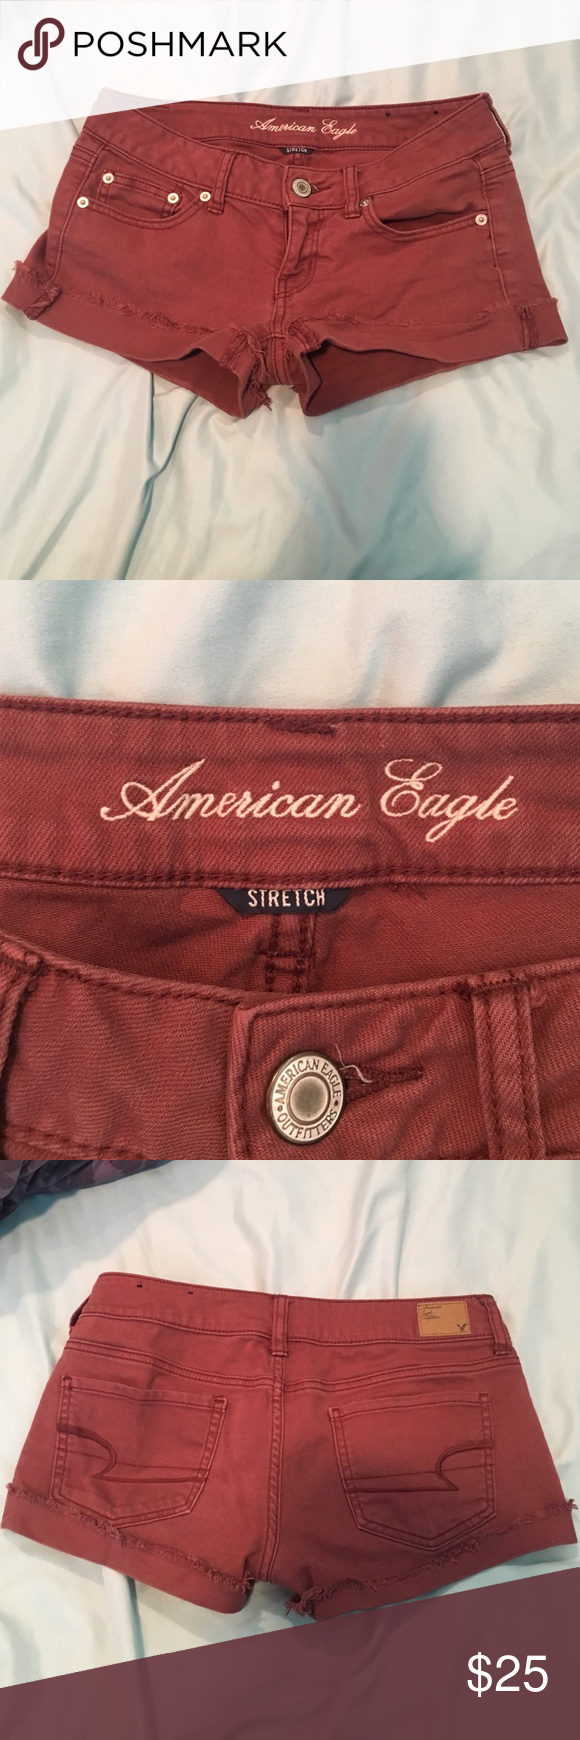 American eagle burnt red stretch shorts American eagle burnt red stretch shorts size 4 American Eagle Outfitters Shorts Jean Shorts